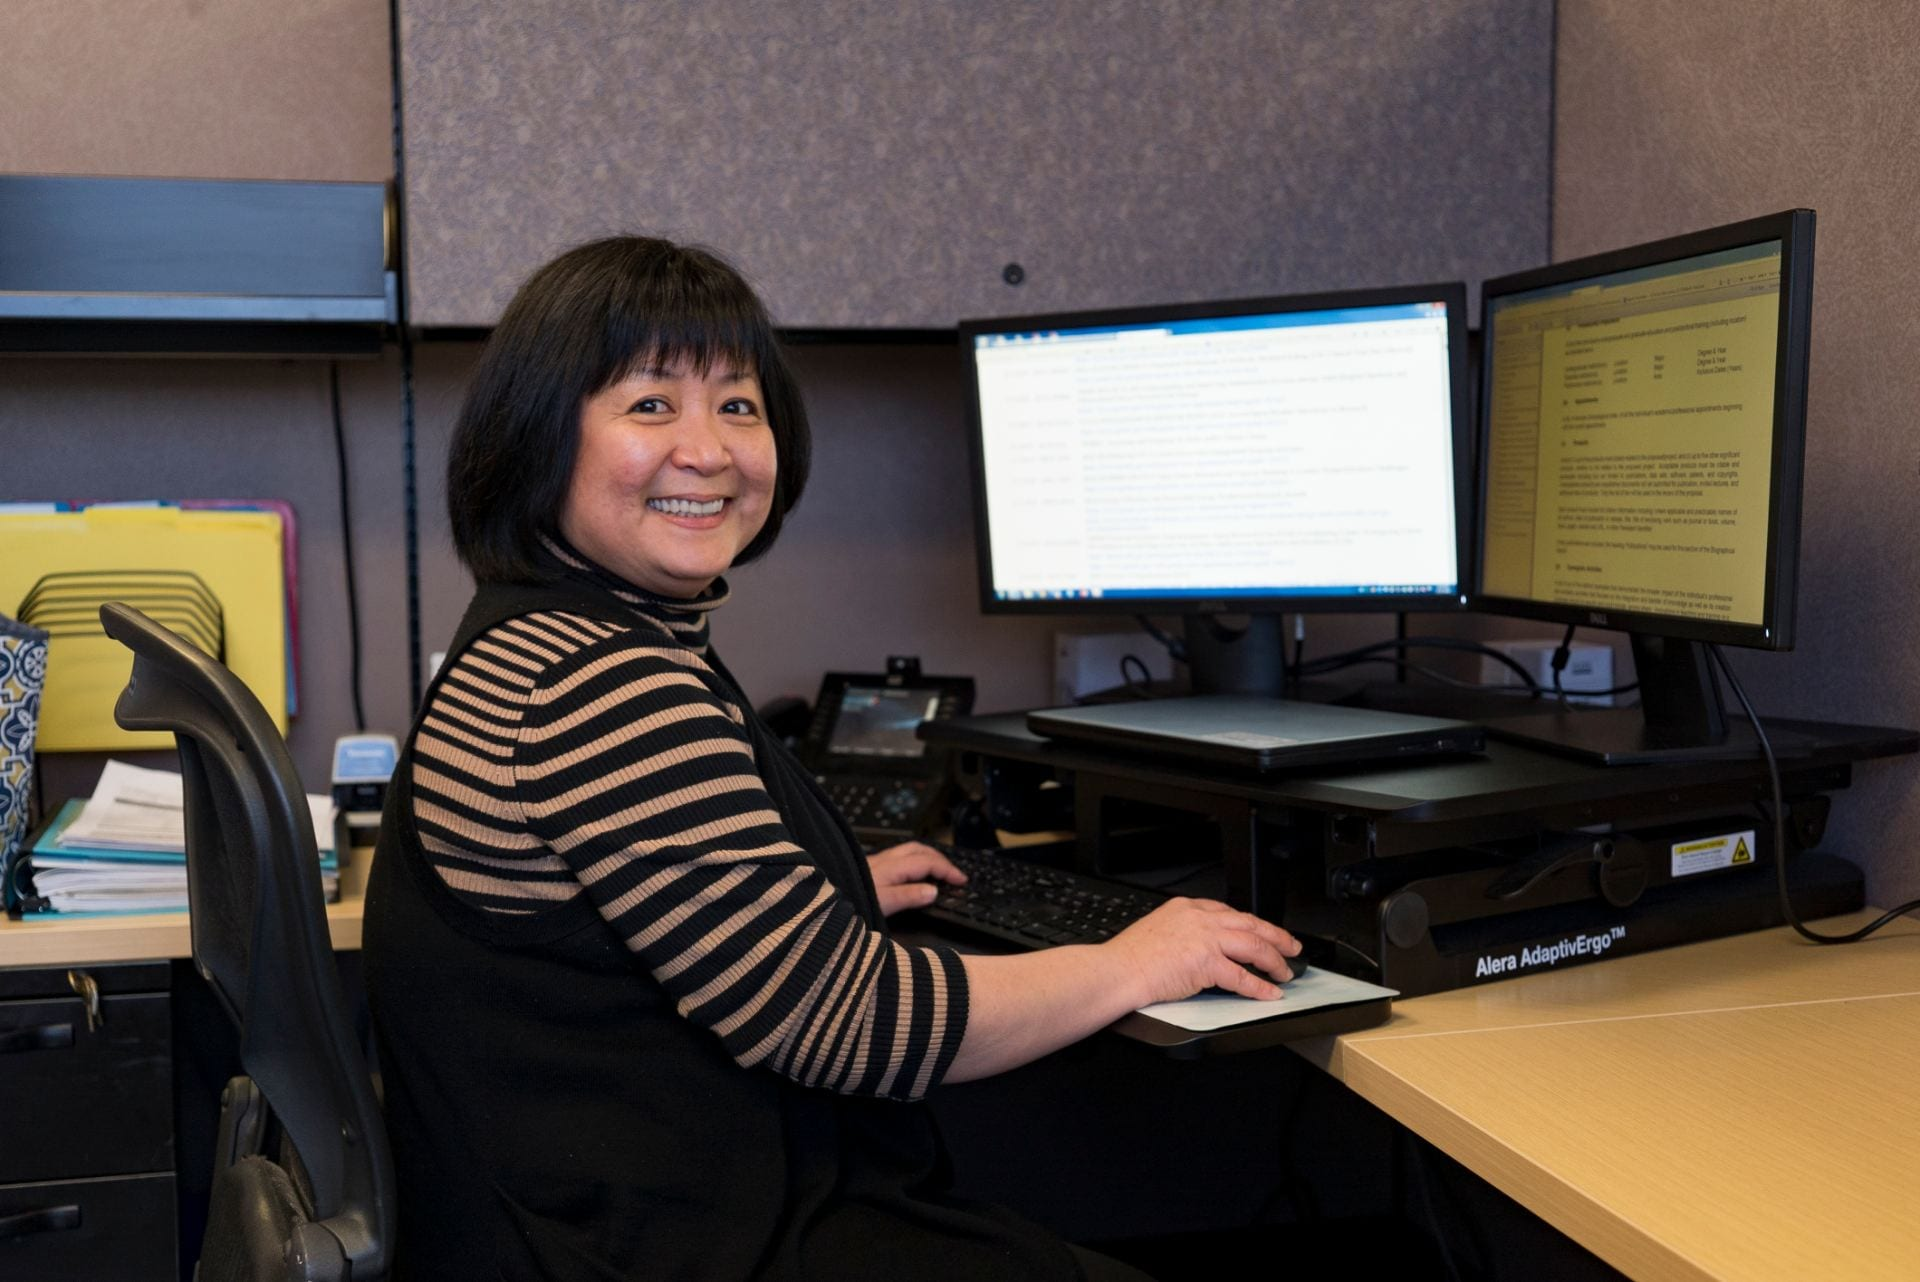 Diem Trang Vo works as a post-award manager at the SJSU Research Foundation.